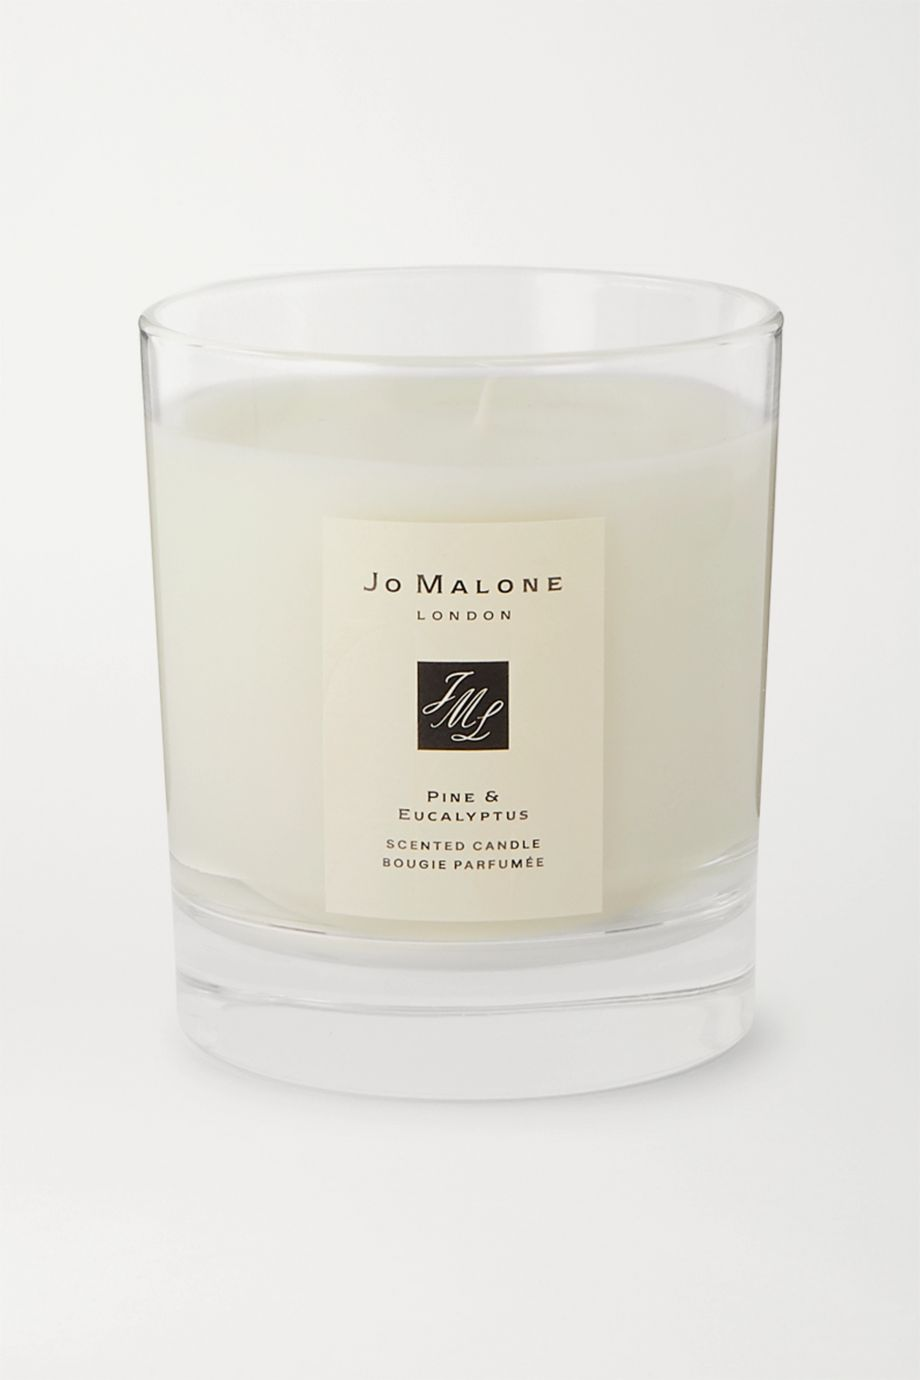 Jo Malone London Pine and Eucalyptus Scented Candle, 200g